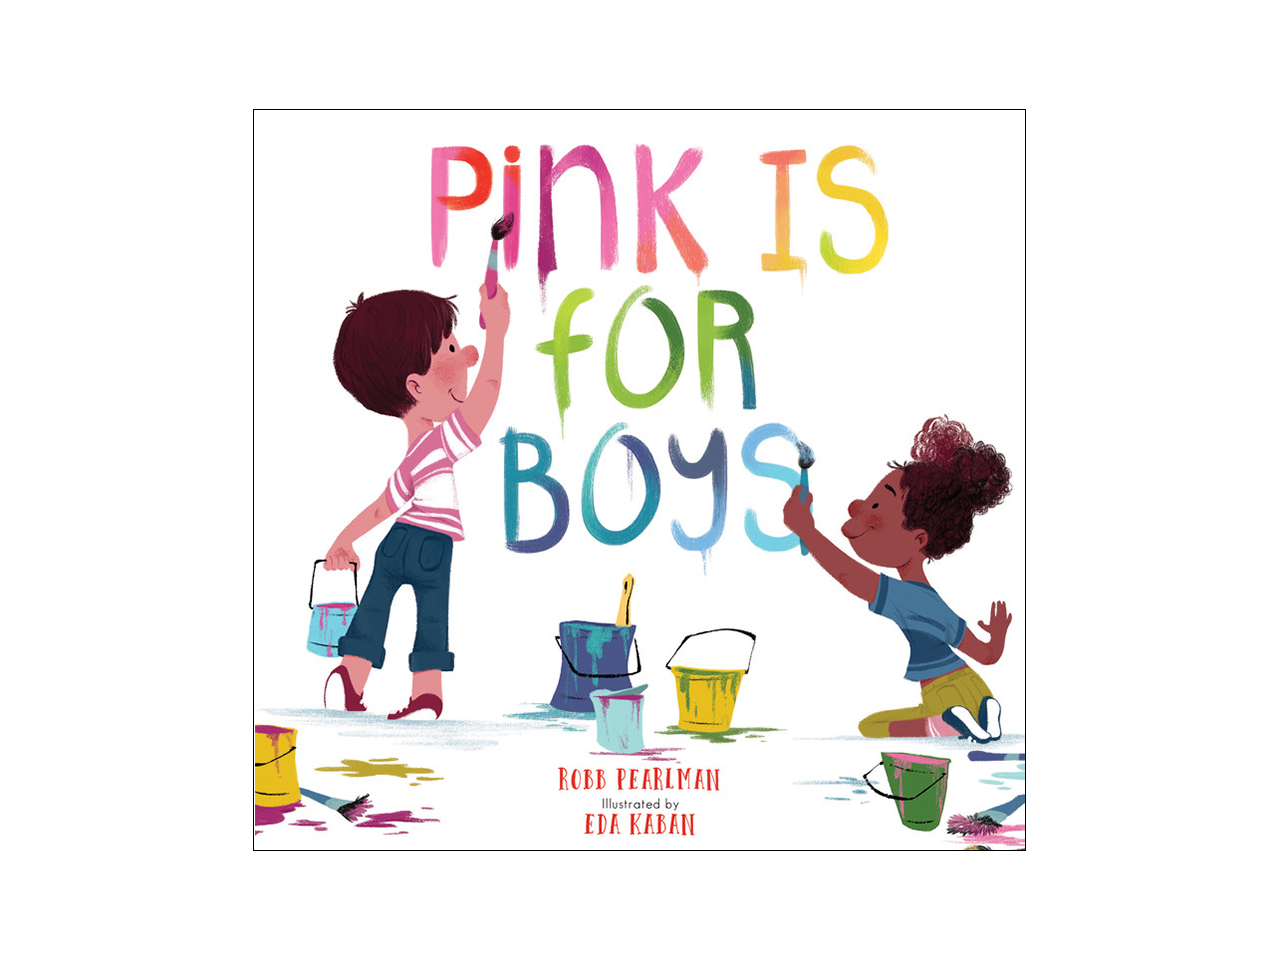 Book cover with boy and girl painting